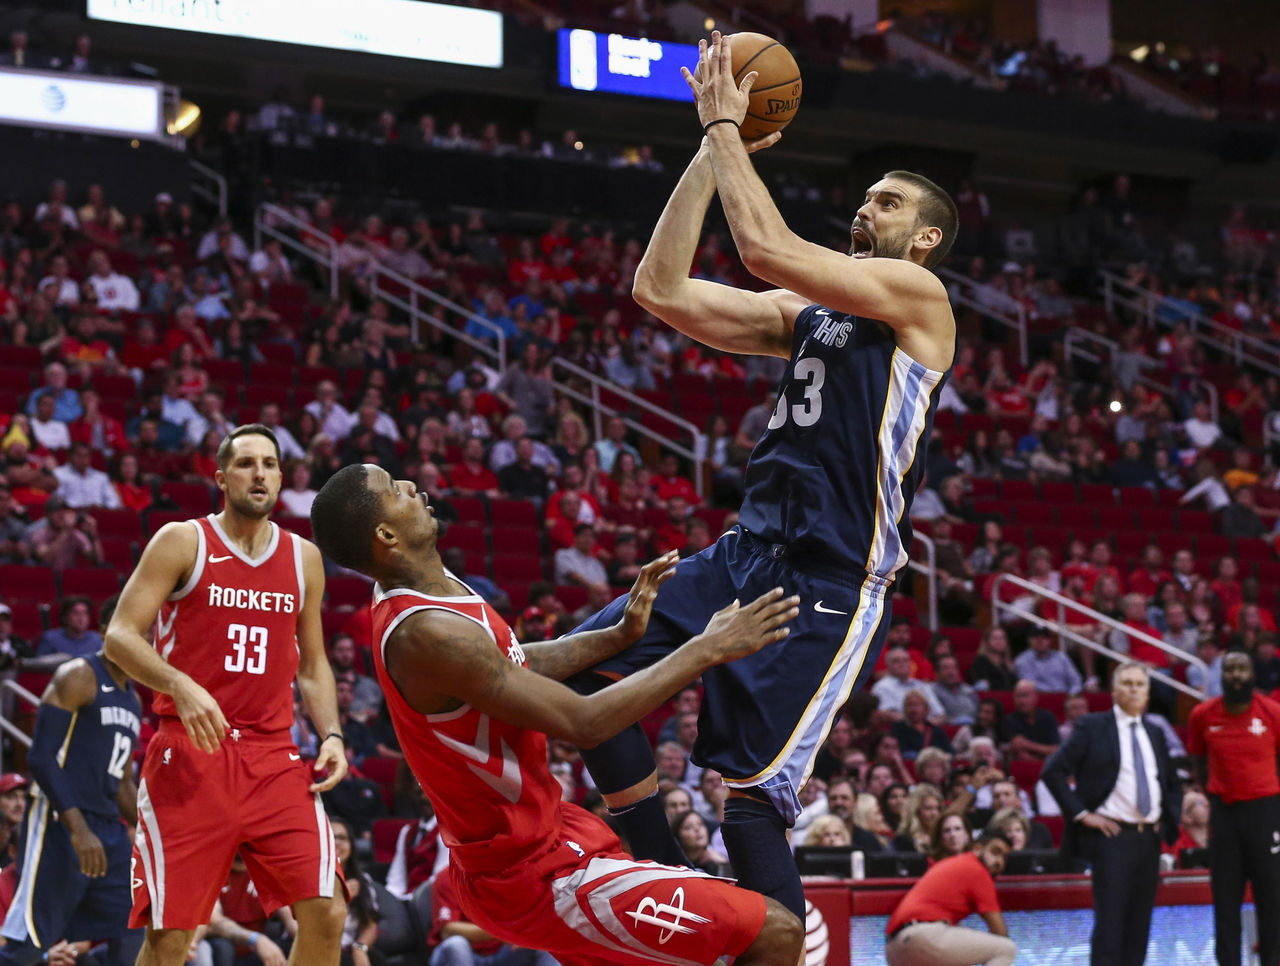 Cropped 2017 10 24t024527z 330774355 nocid rtrmadp 3 nba memphis grizzlies at houston rockets